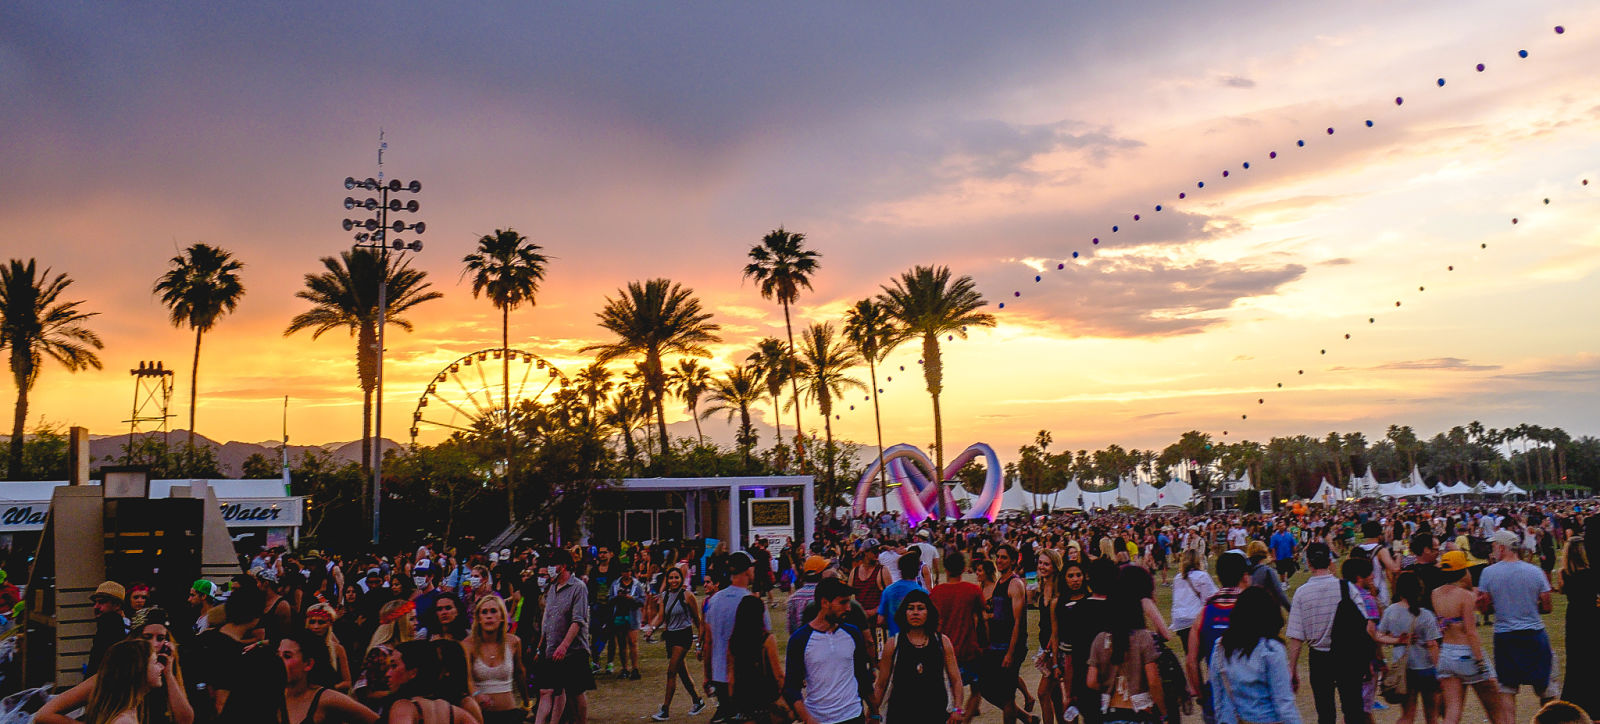 5 festivales baratos como alternativa al Coachella